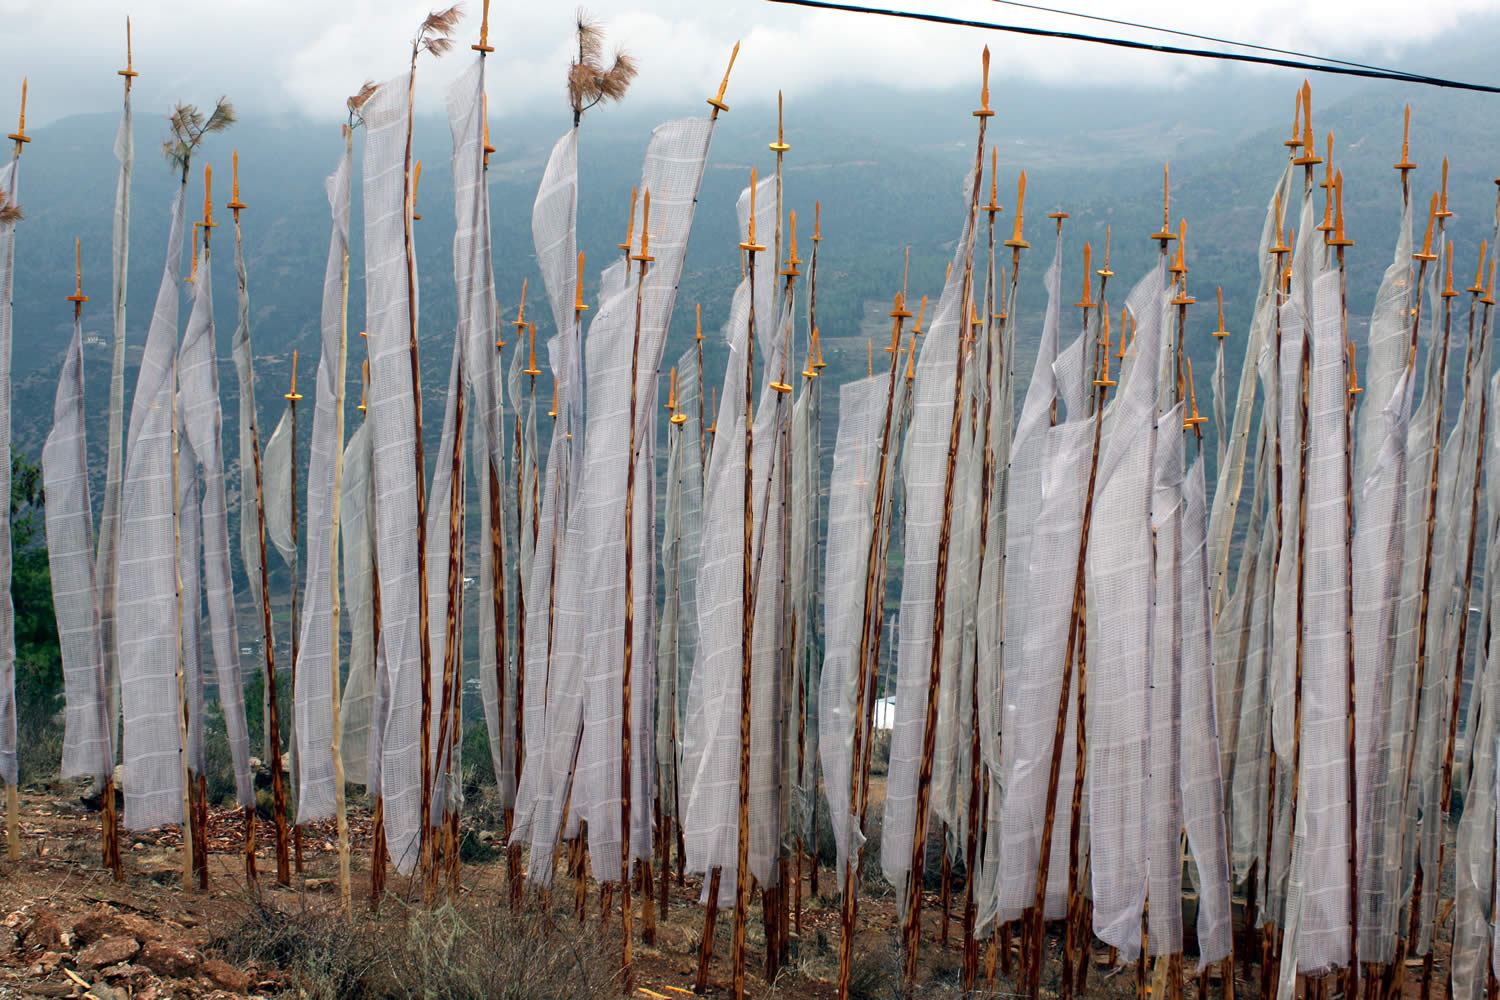 Cluster of white prayer flags at Drak Karpo commemorating the dead. THis is a common site across Bhutan.